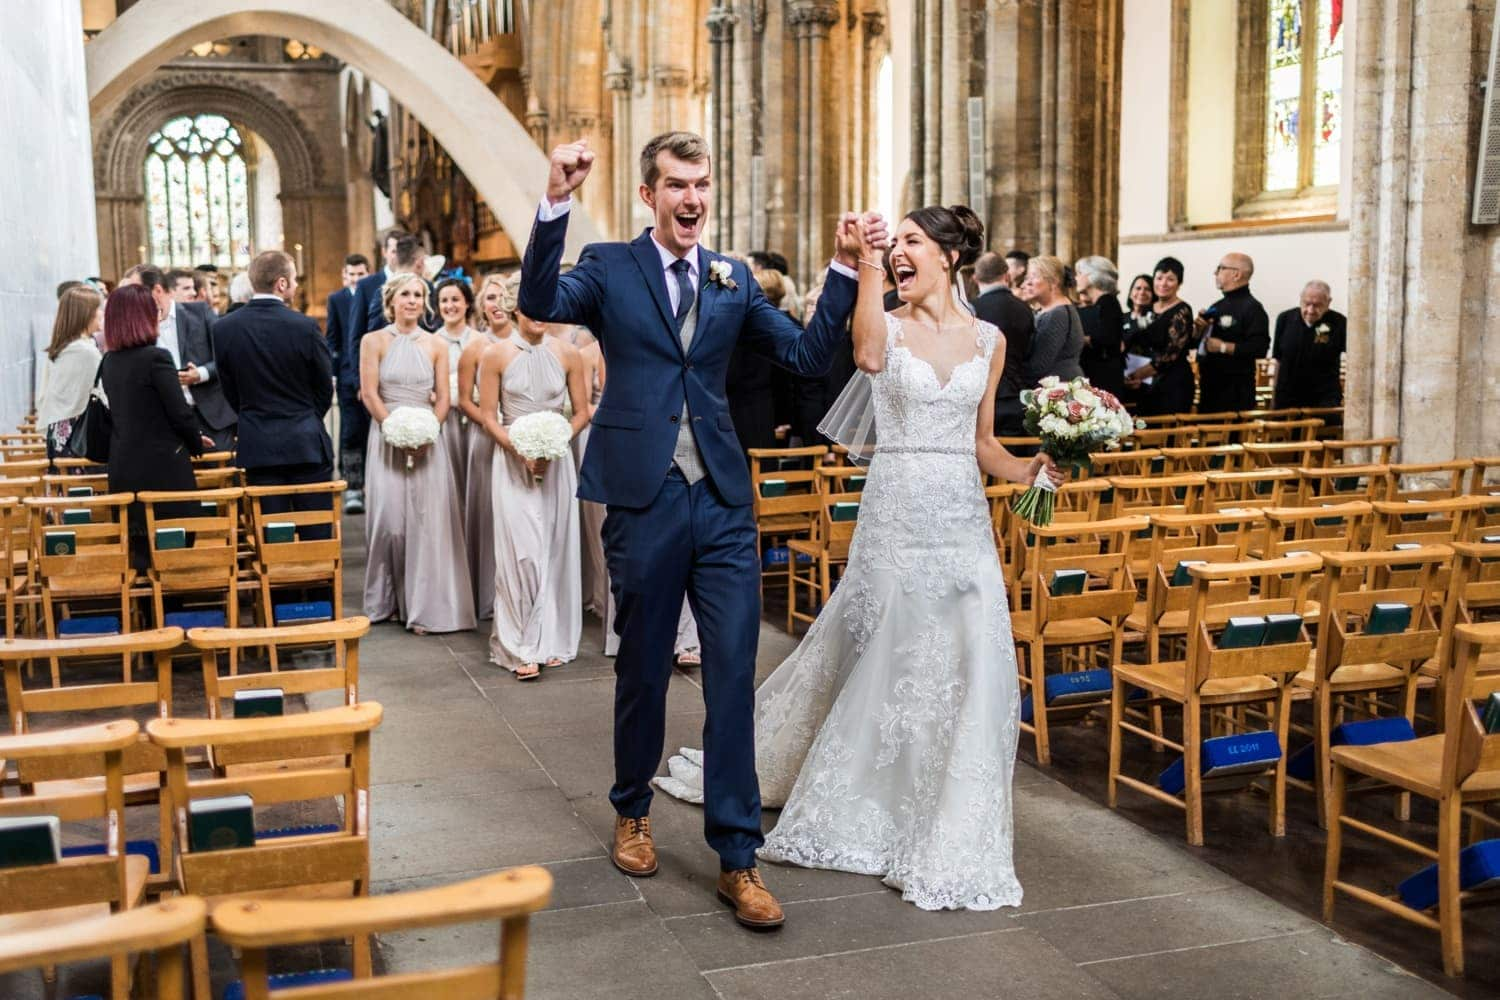 Dani King and Matt Rowe wedding ceremony at Llandaff Cathedral